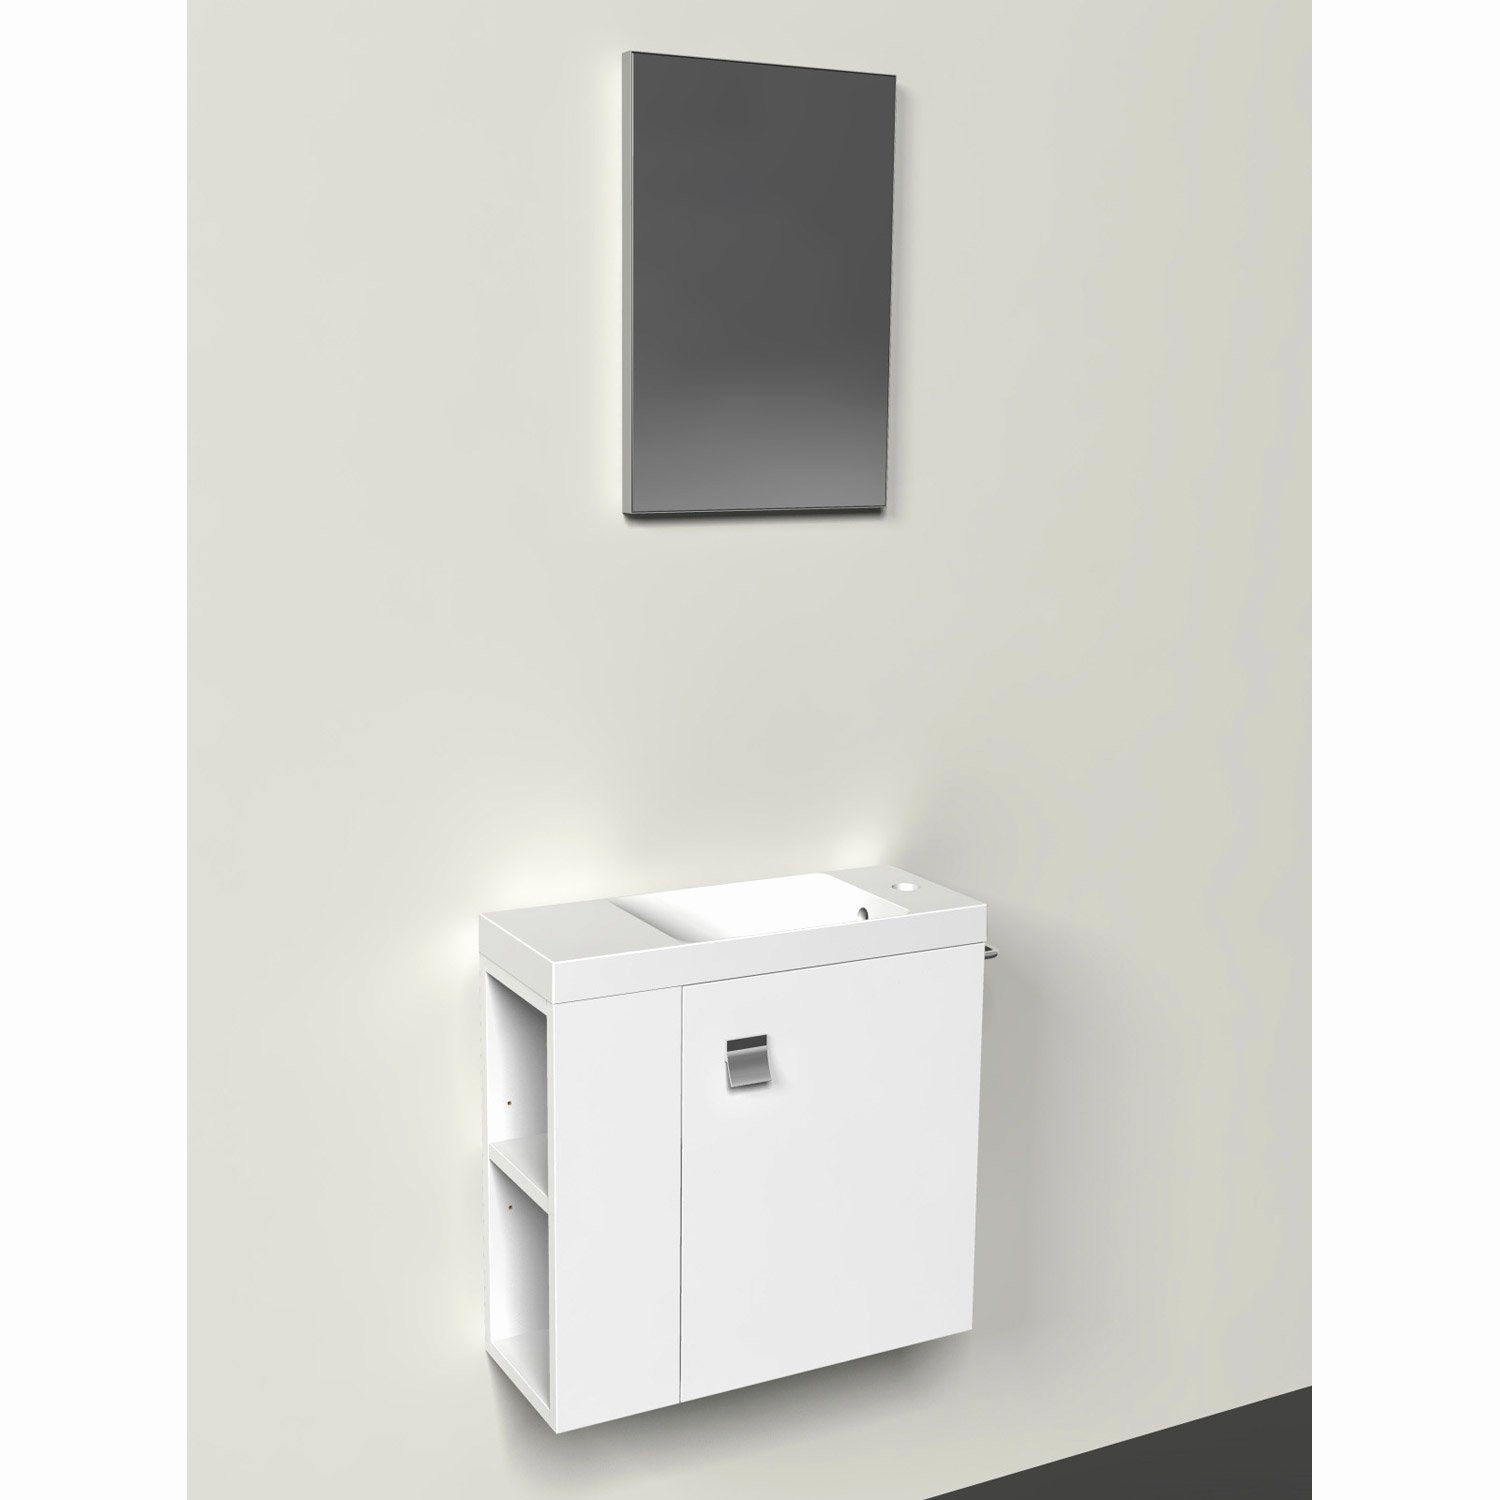 Lave Main Leroy Merlin Meuble Beau Photos Meuble Wc Leroy Merlin 24 Beau Collection De Lave Main Wc Leroy